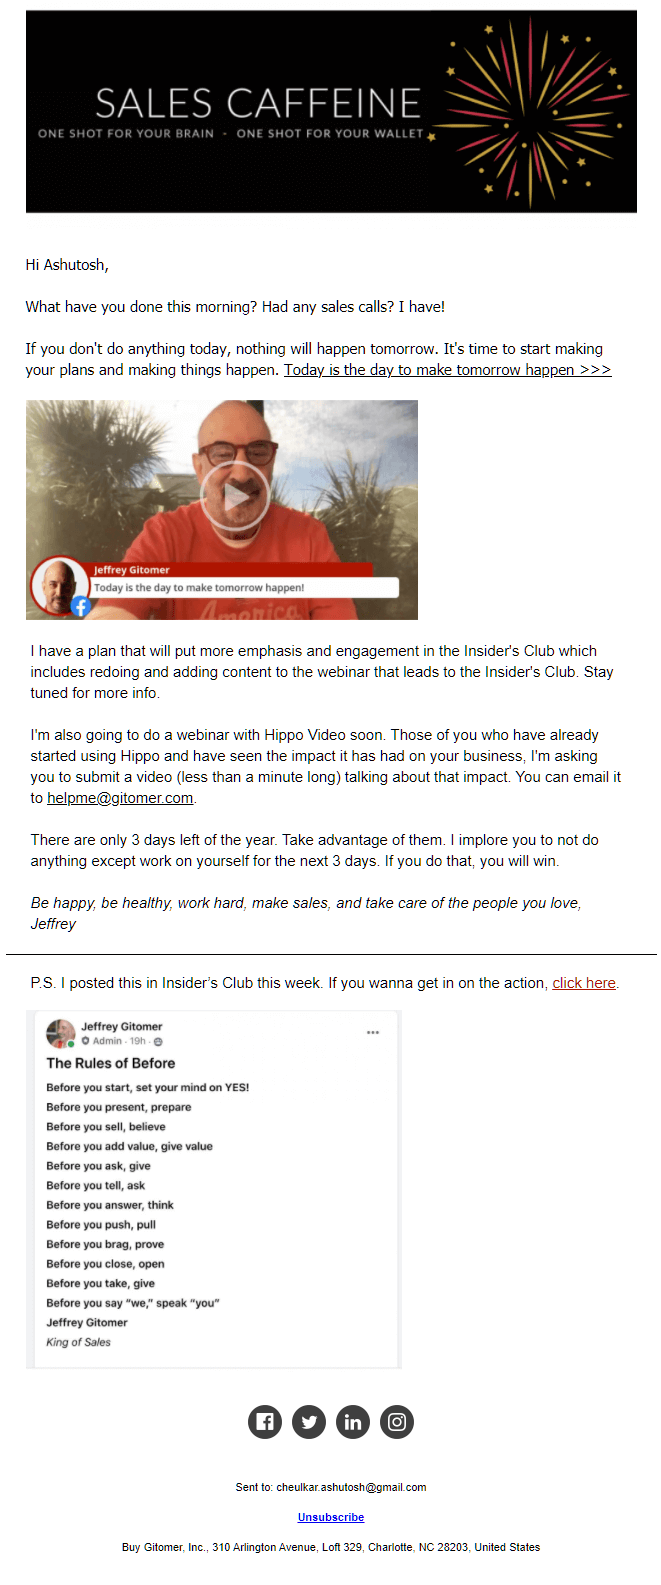 Jeffrey Gitomer's Sales Caffeine newsletter